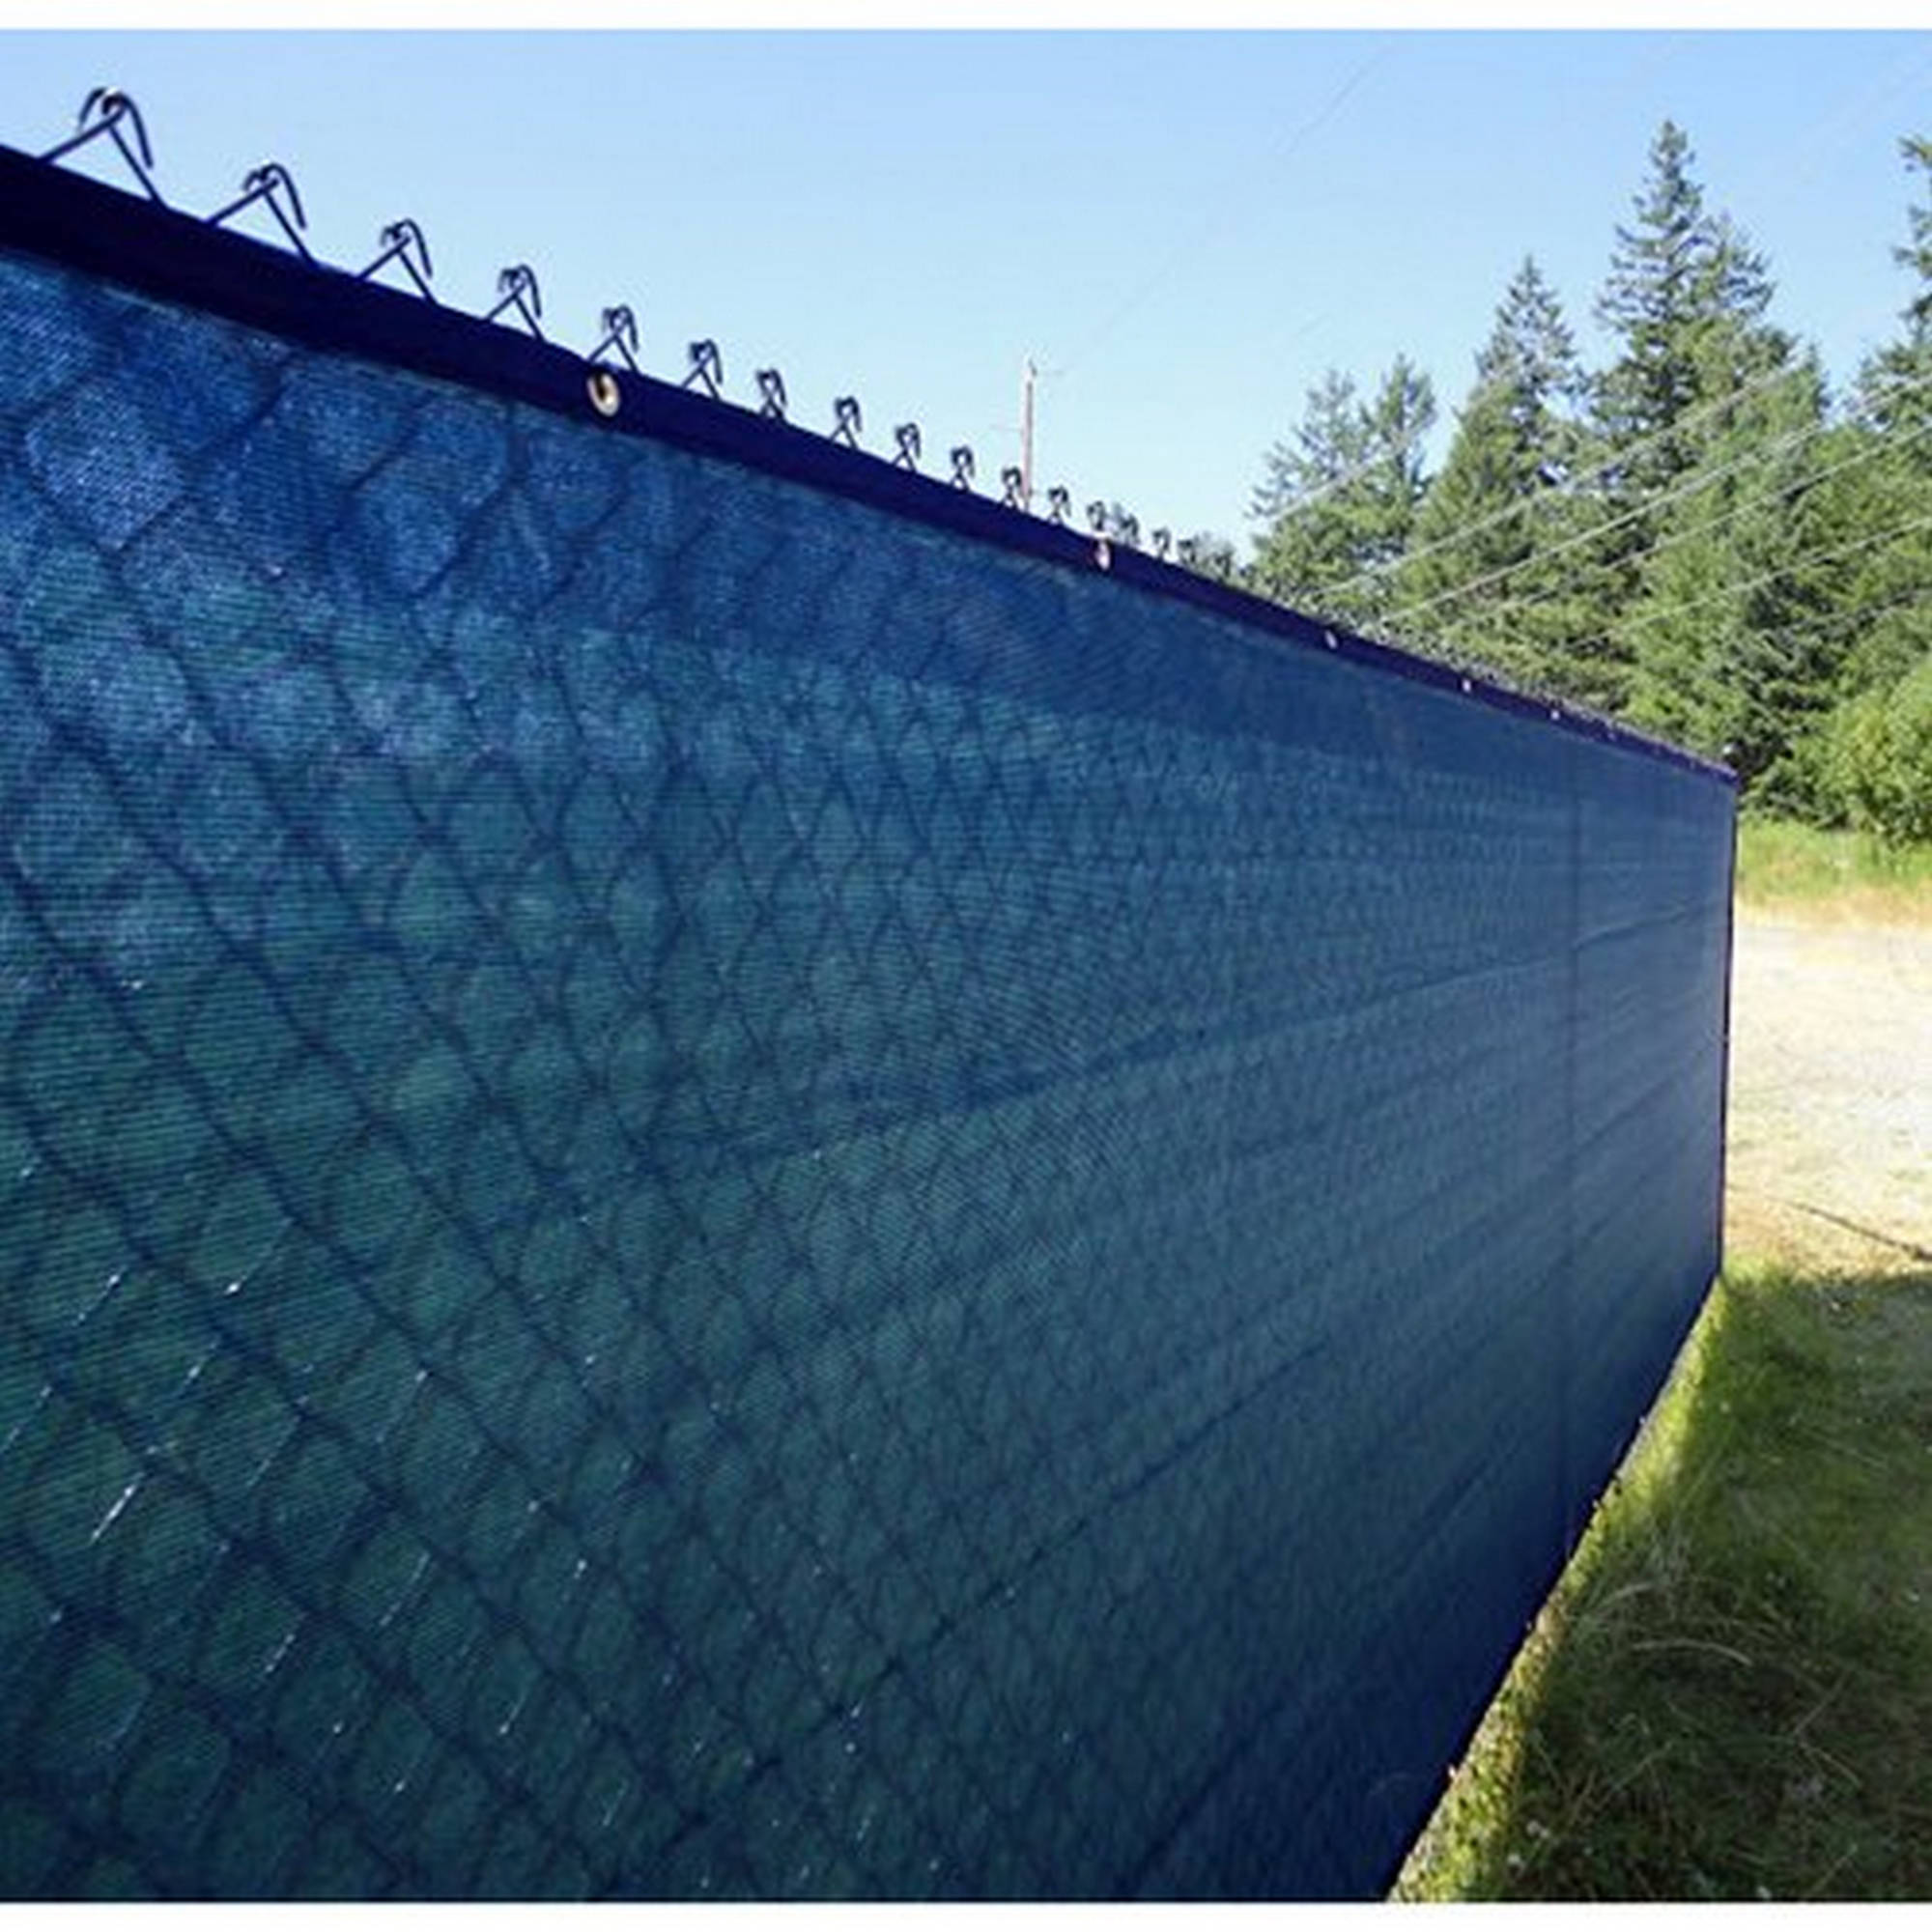 Aleko 6' x 50' Blue Fence Privacy Screen Outdoor Backyard Fencing Privacy Windscreen